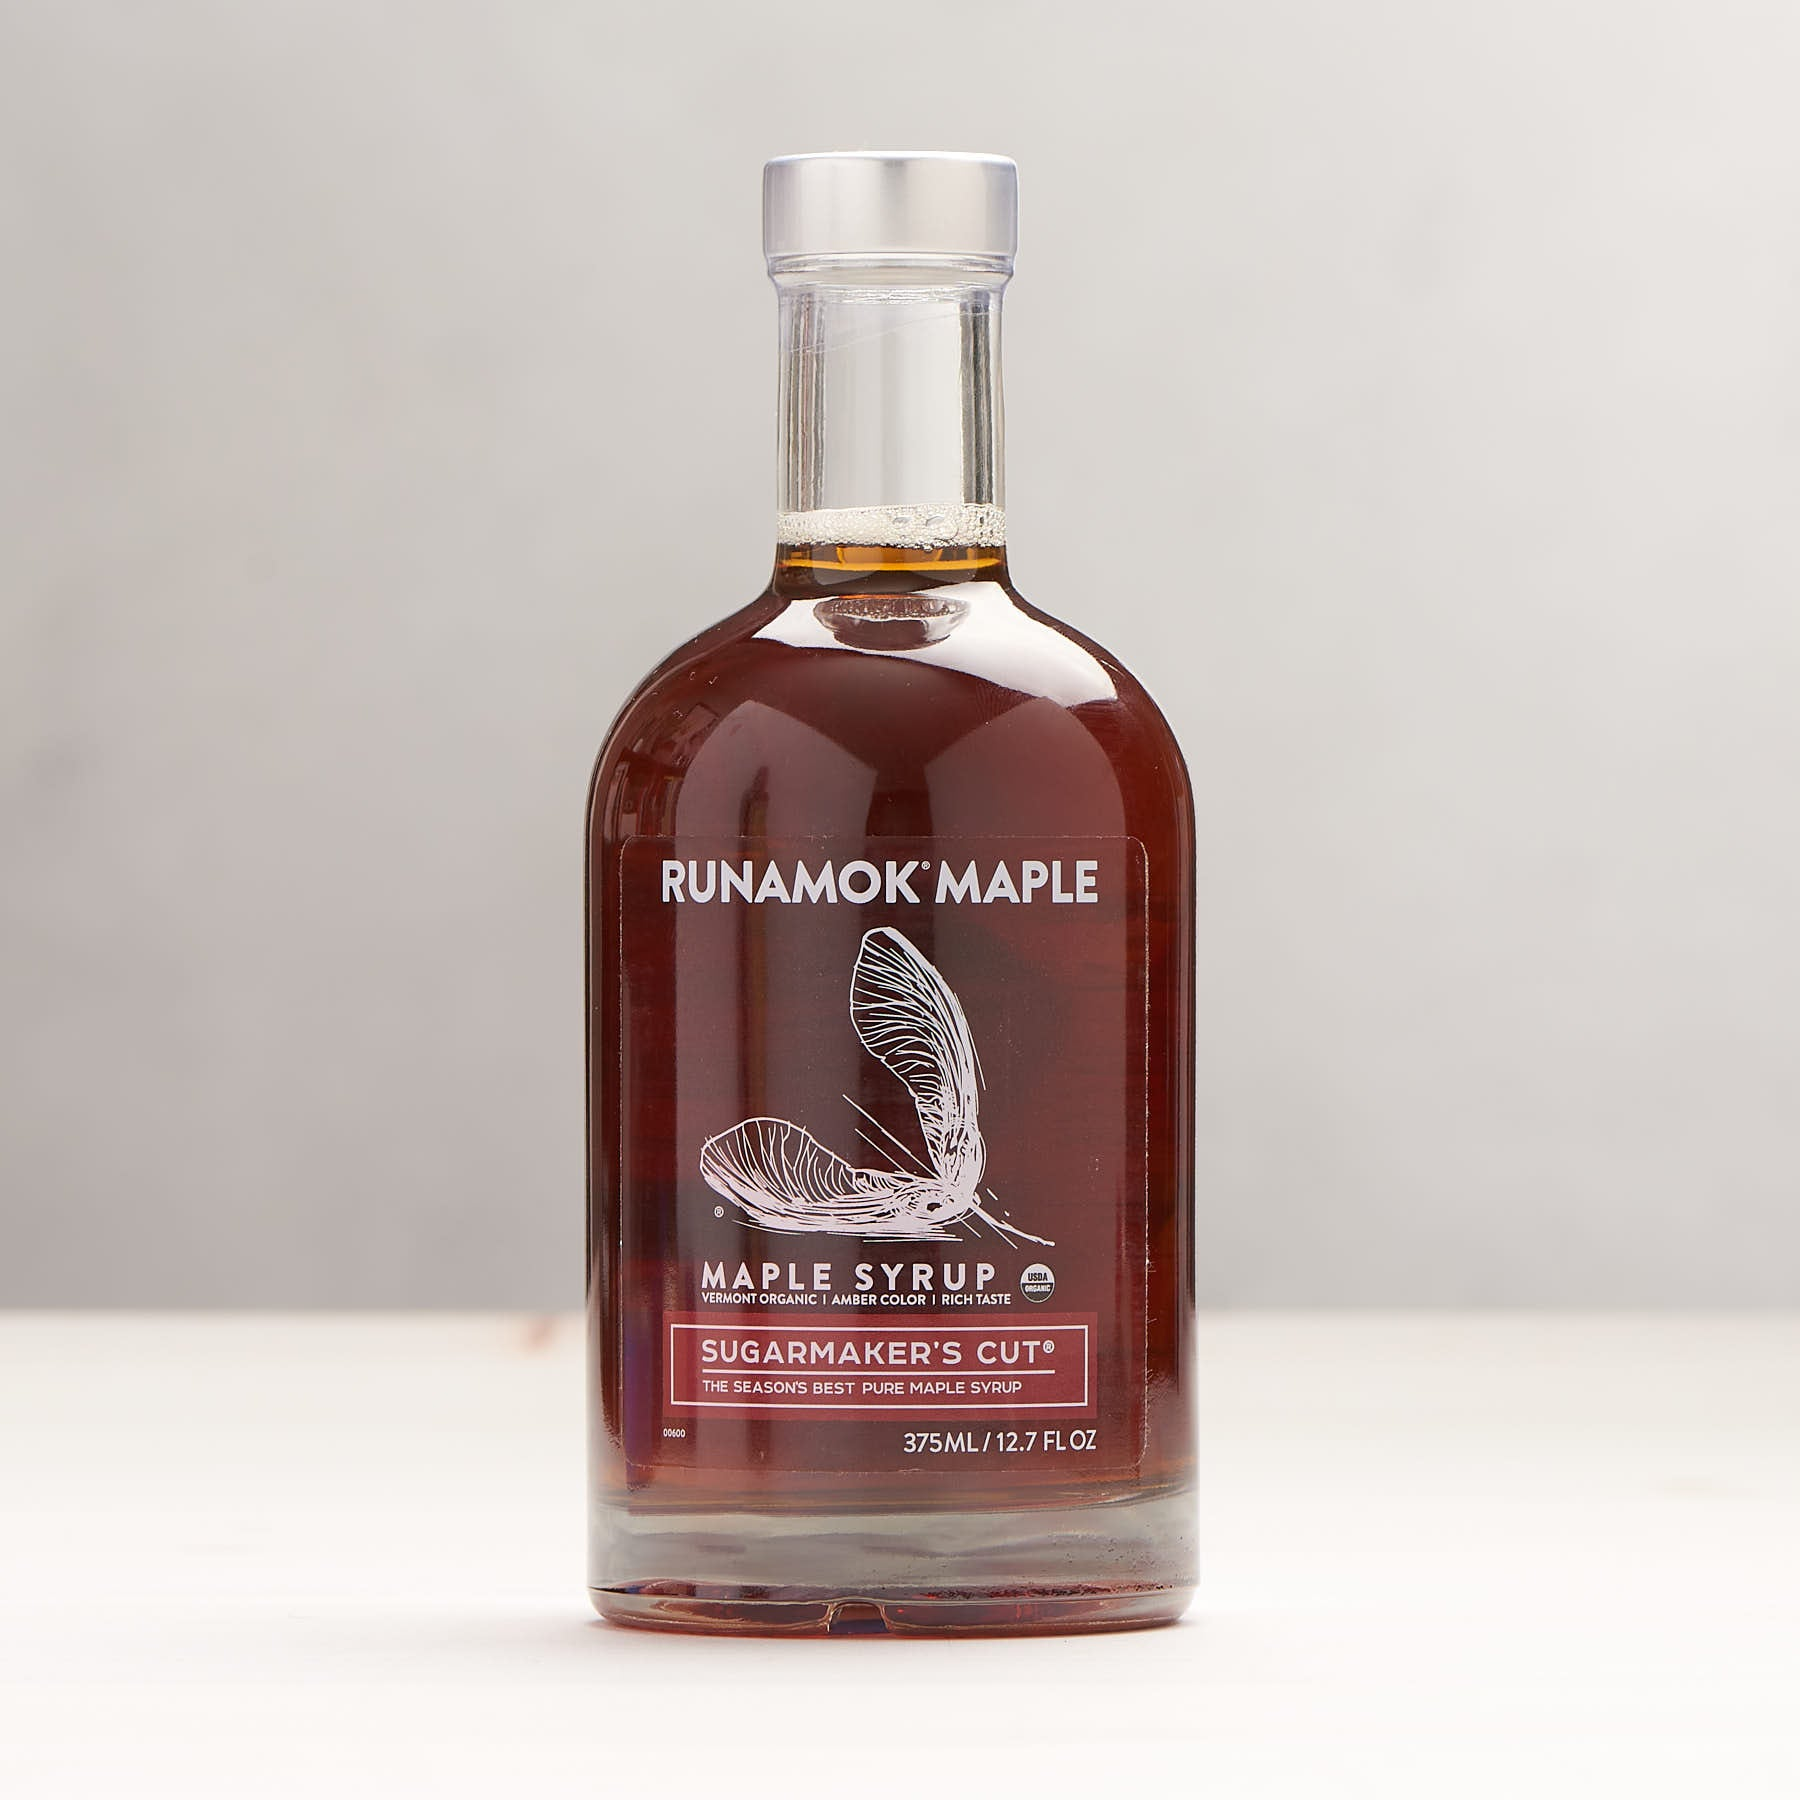 Runamok Maple Sugarmaker's Cut Maple Syrup